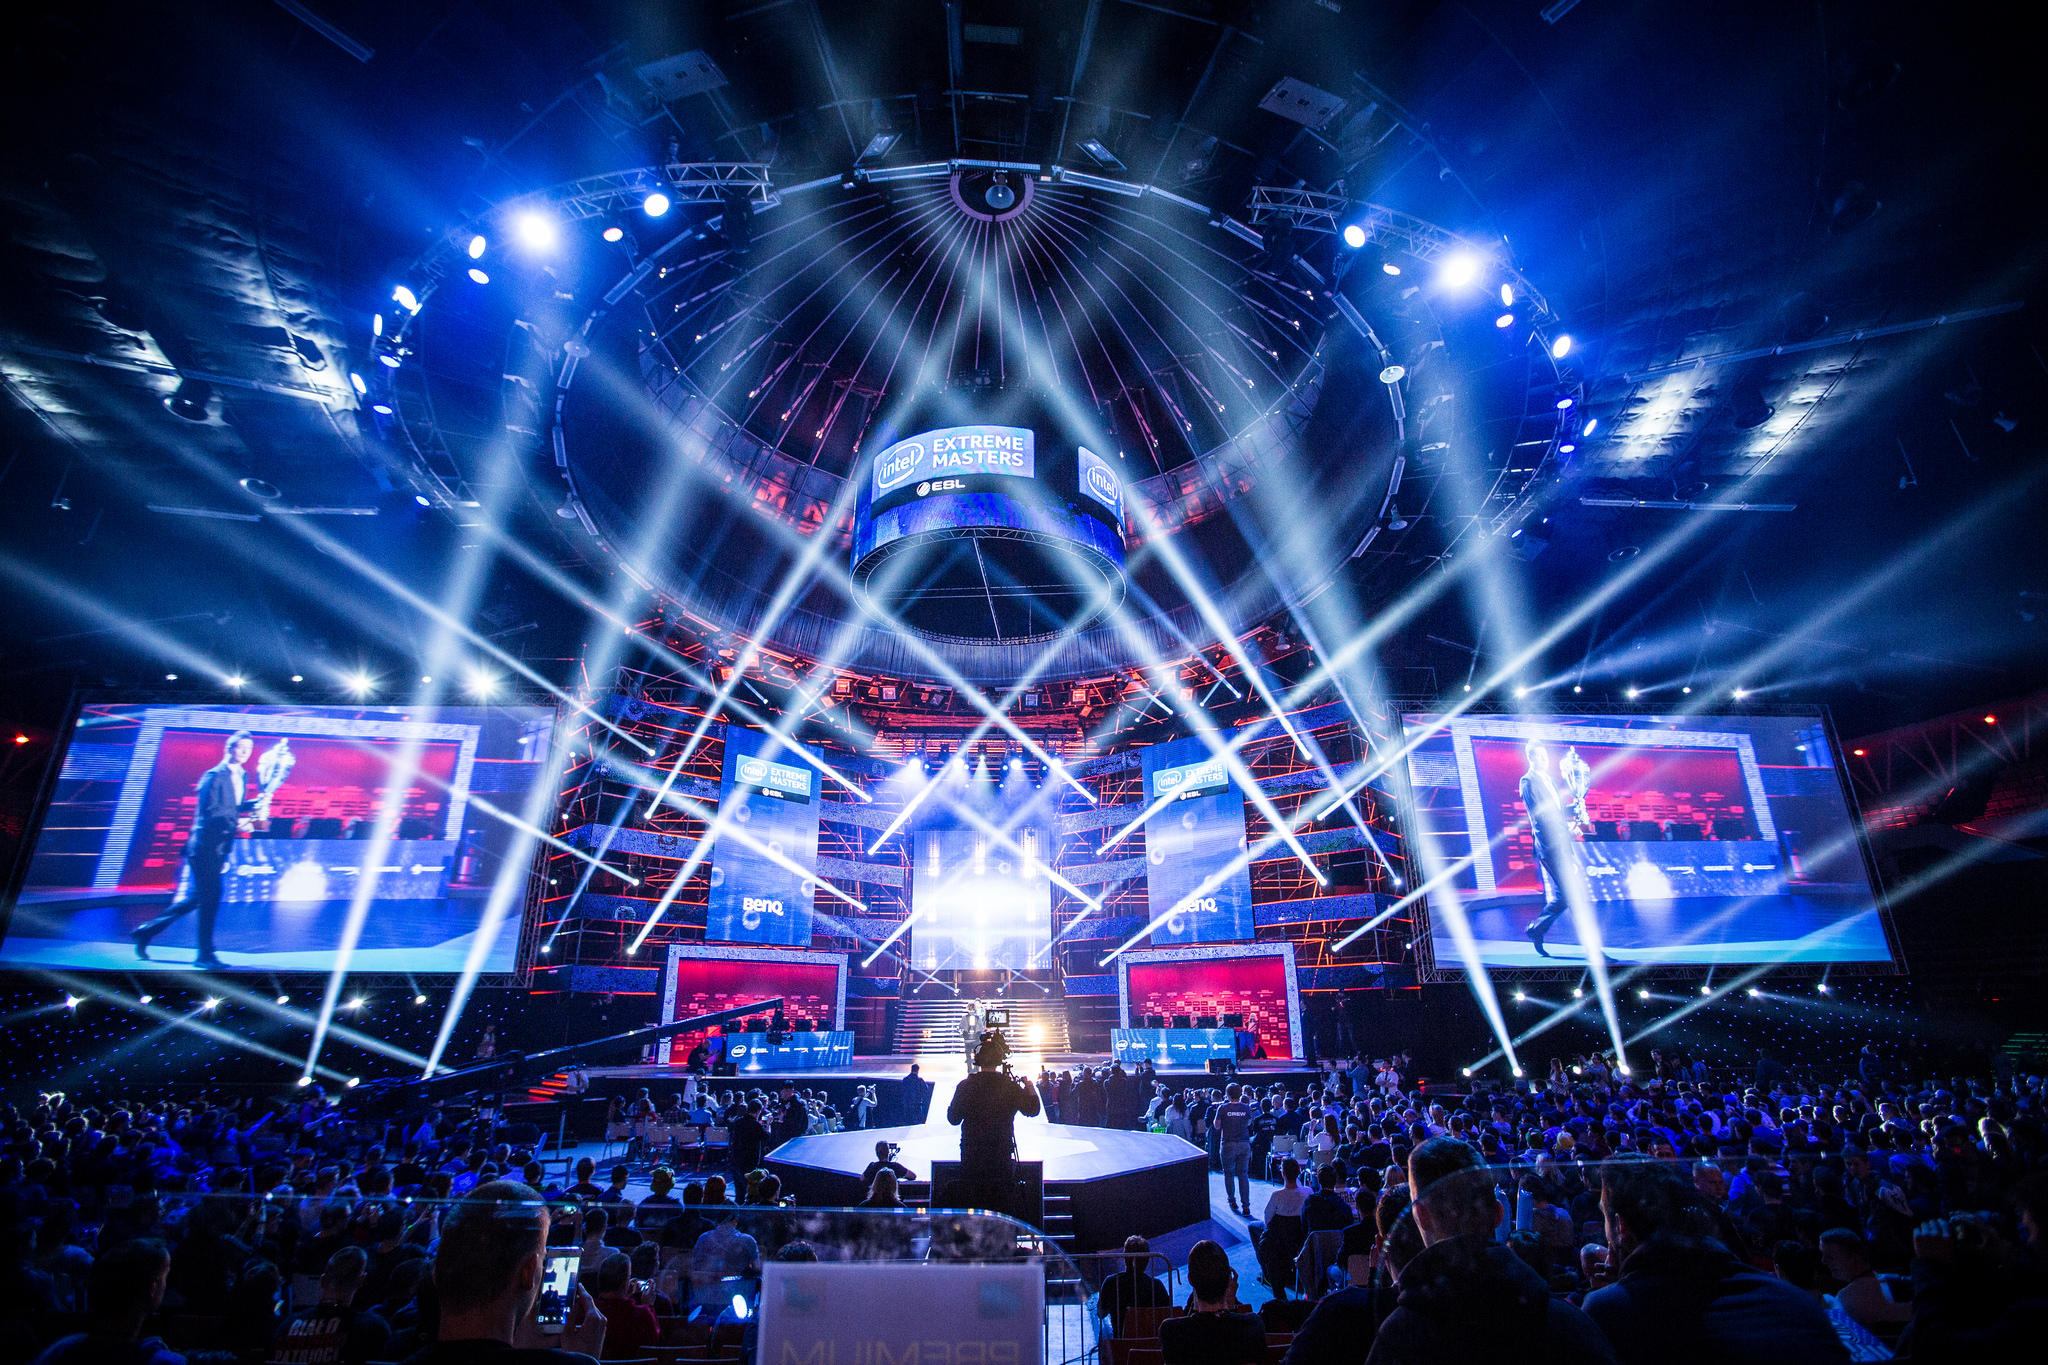 Katowice, Poland is home to the largest eSports event in the world—Intel Extreme Masters.